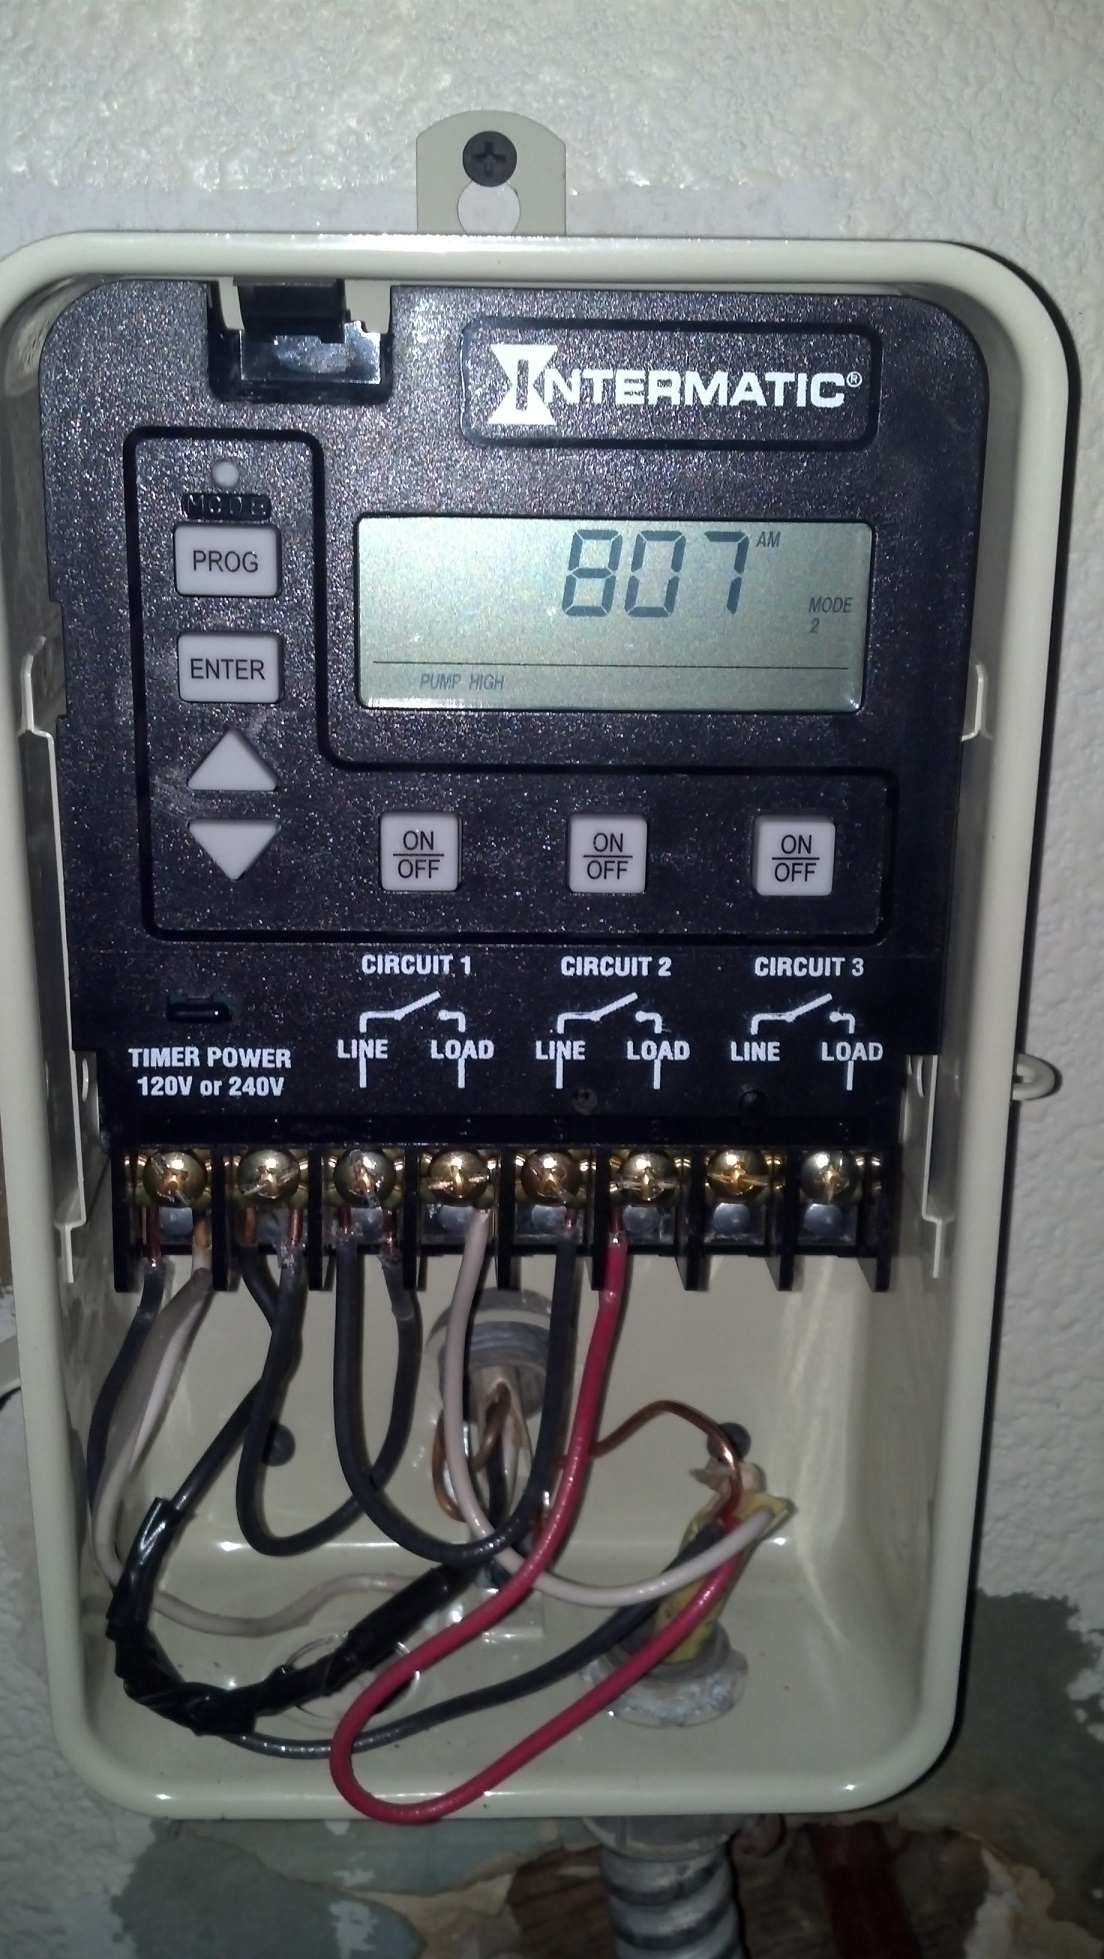 1 mark pe153 wiring?format=jpg&scale=both&mode=pad&anchor=middlecenter&width=360&height=270 how to wire a pe153 digital timer to a 2 speed 230v motor swimming pool timer wiring diagram at edmiracle.co